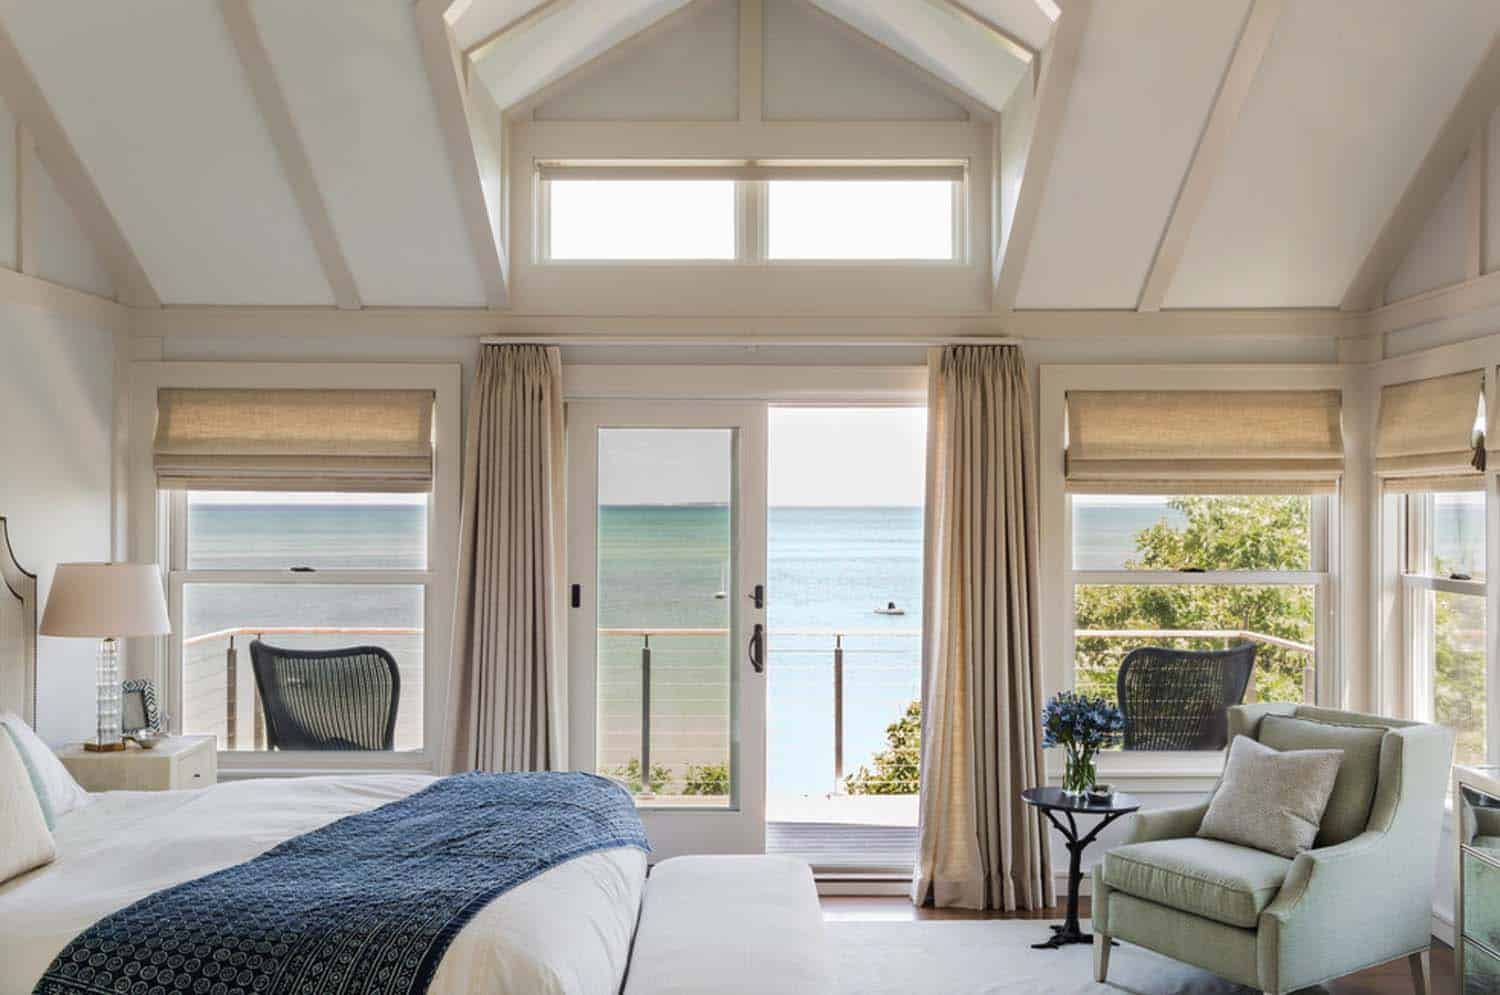 Bedroom With Ocean Views-14-1 Kindesign